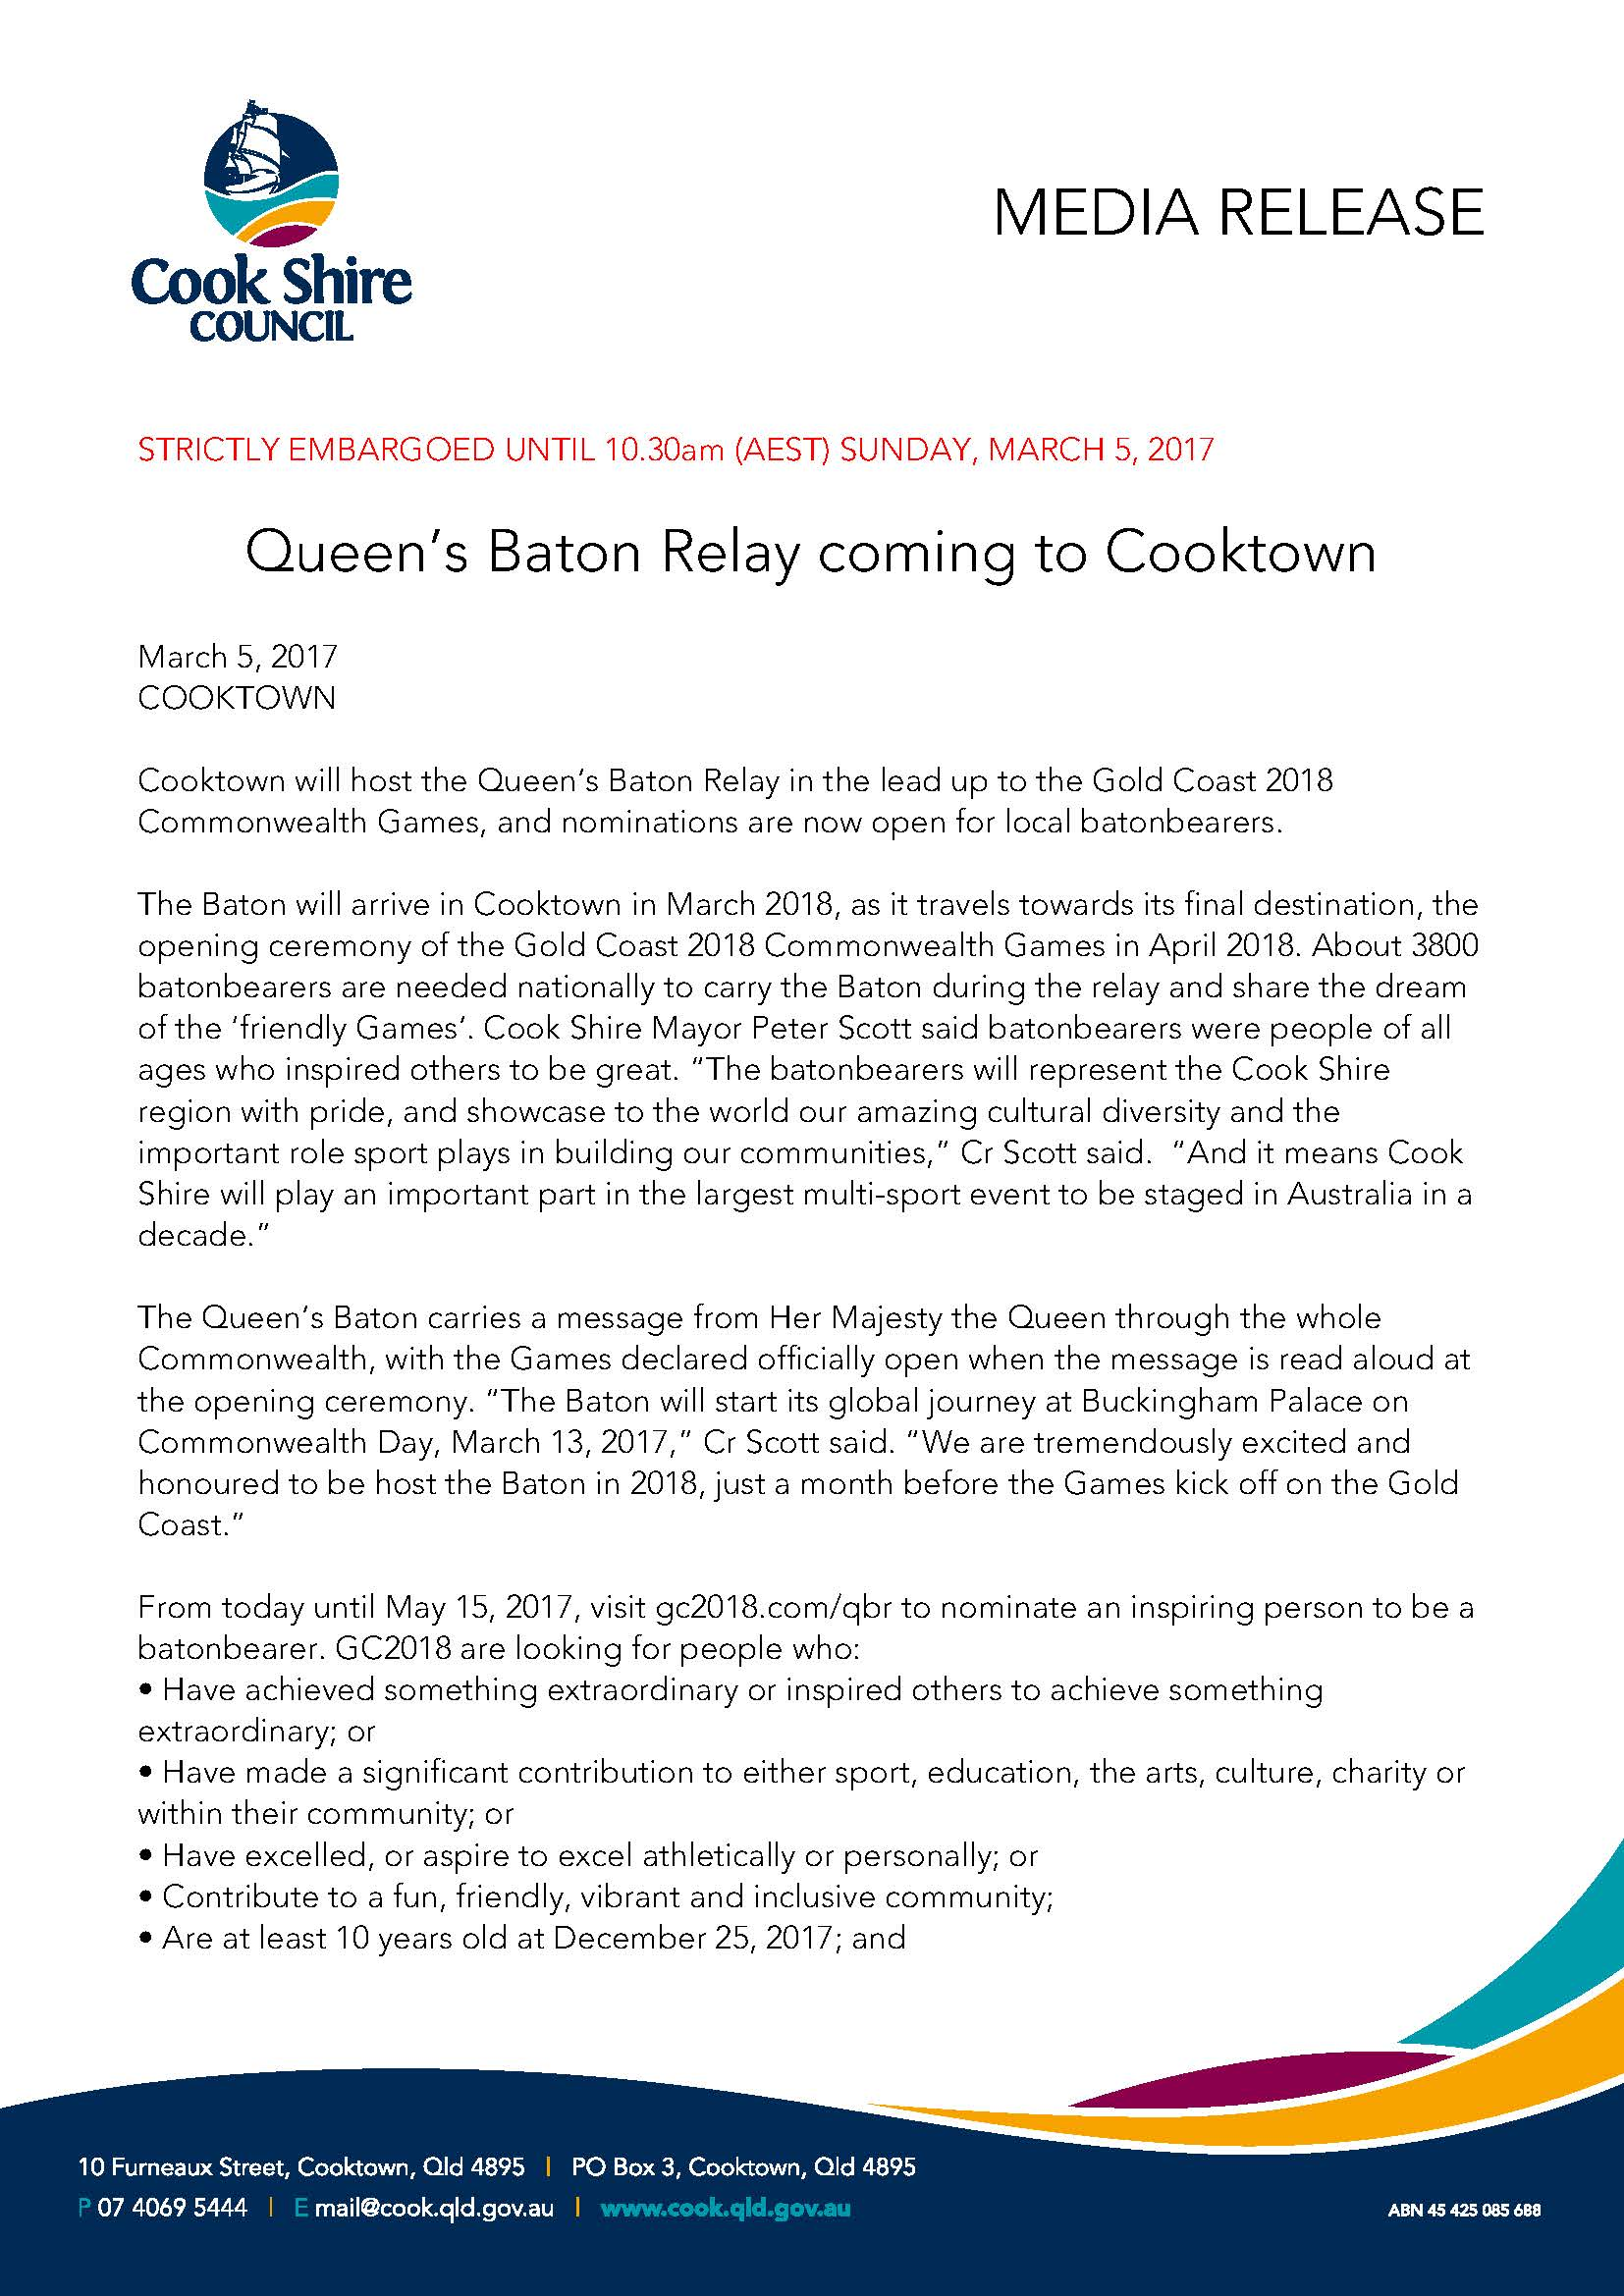 Queen's Baton Relay coming to Cooktown